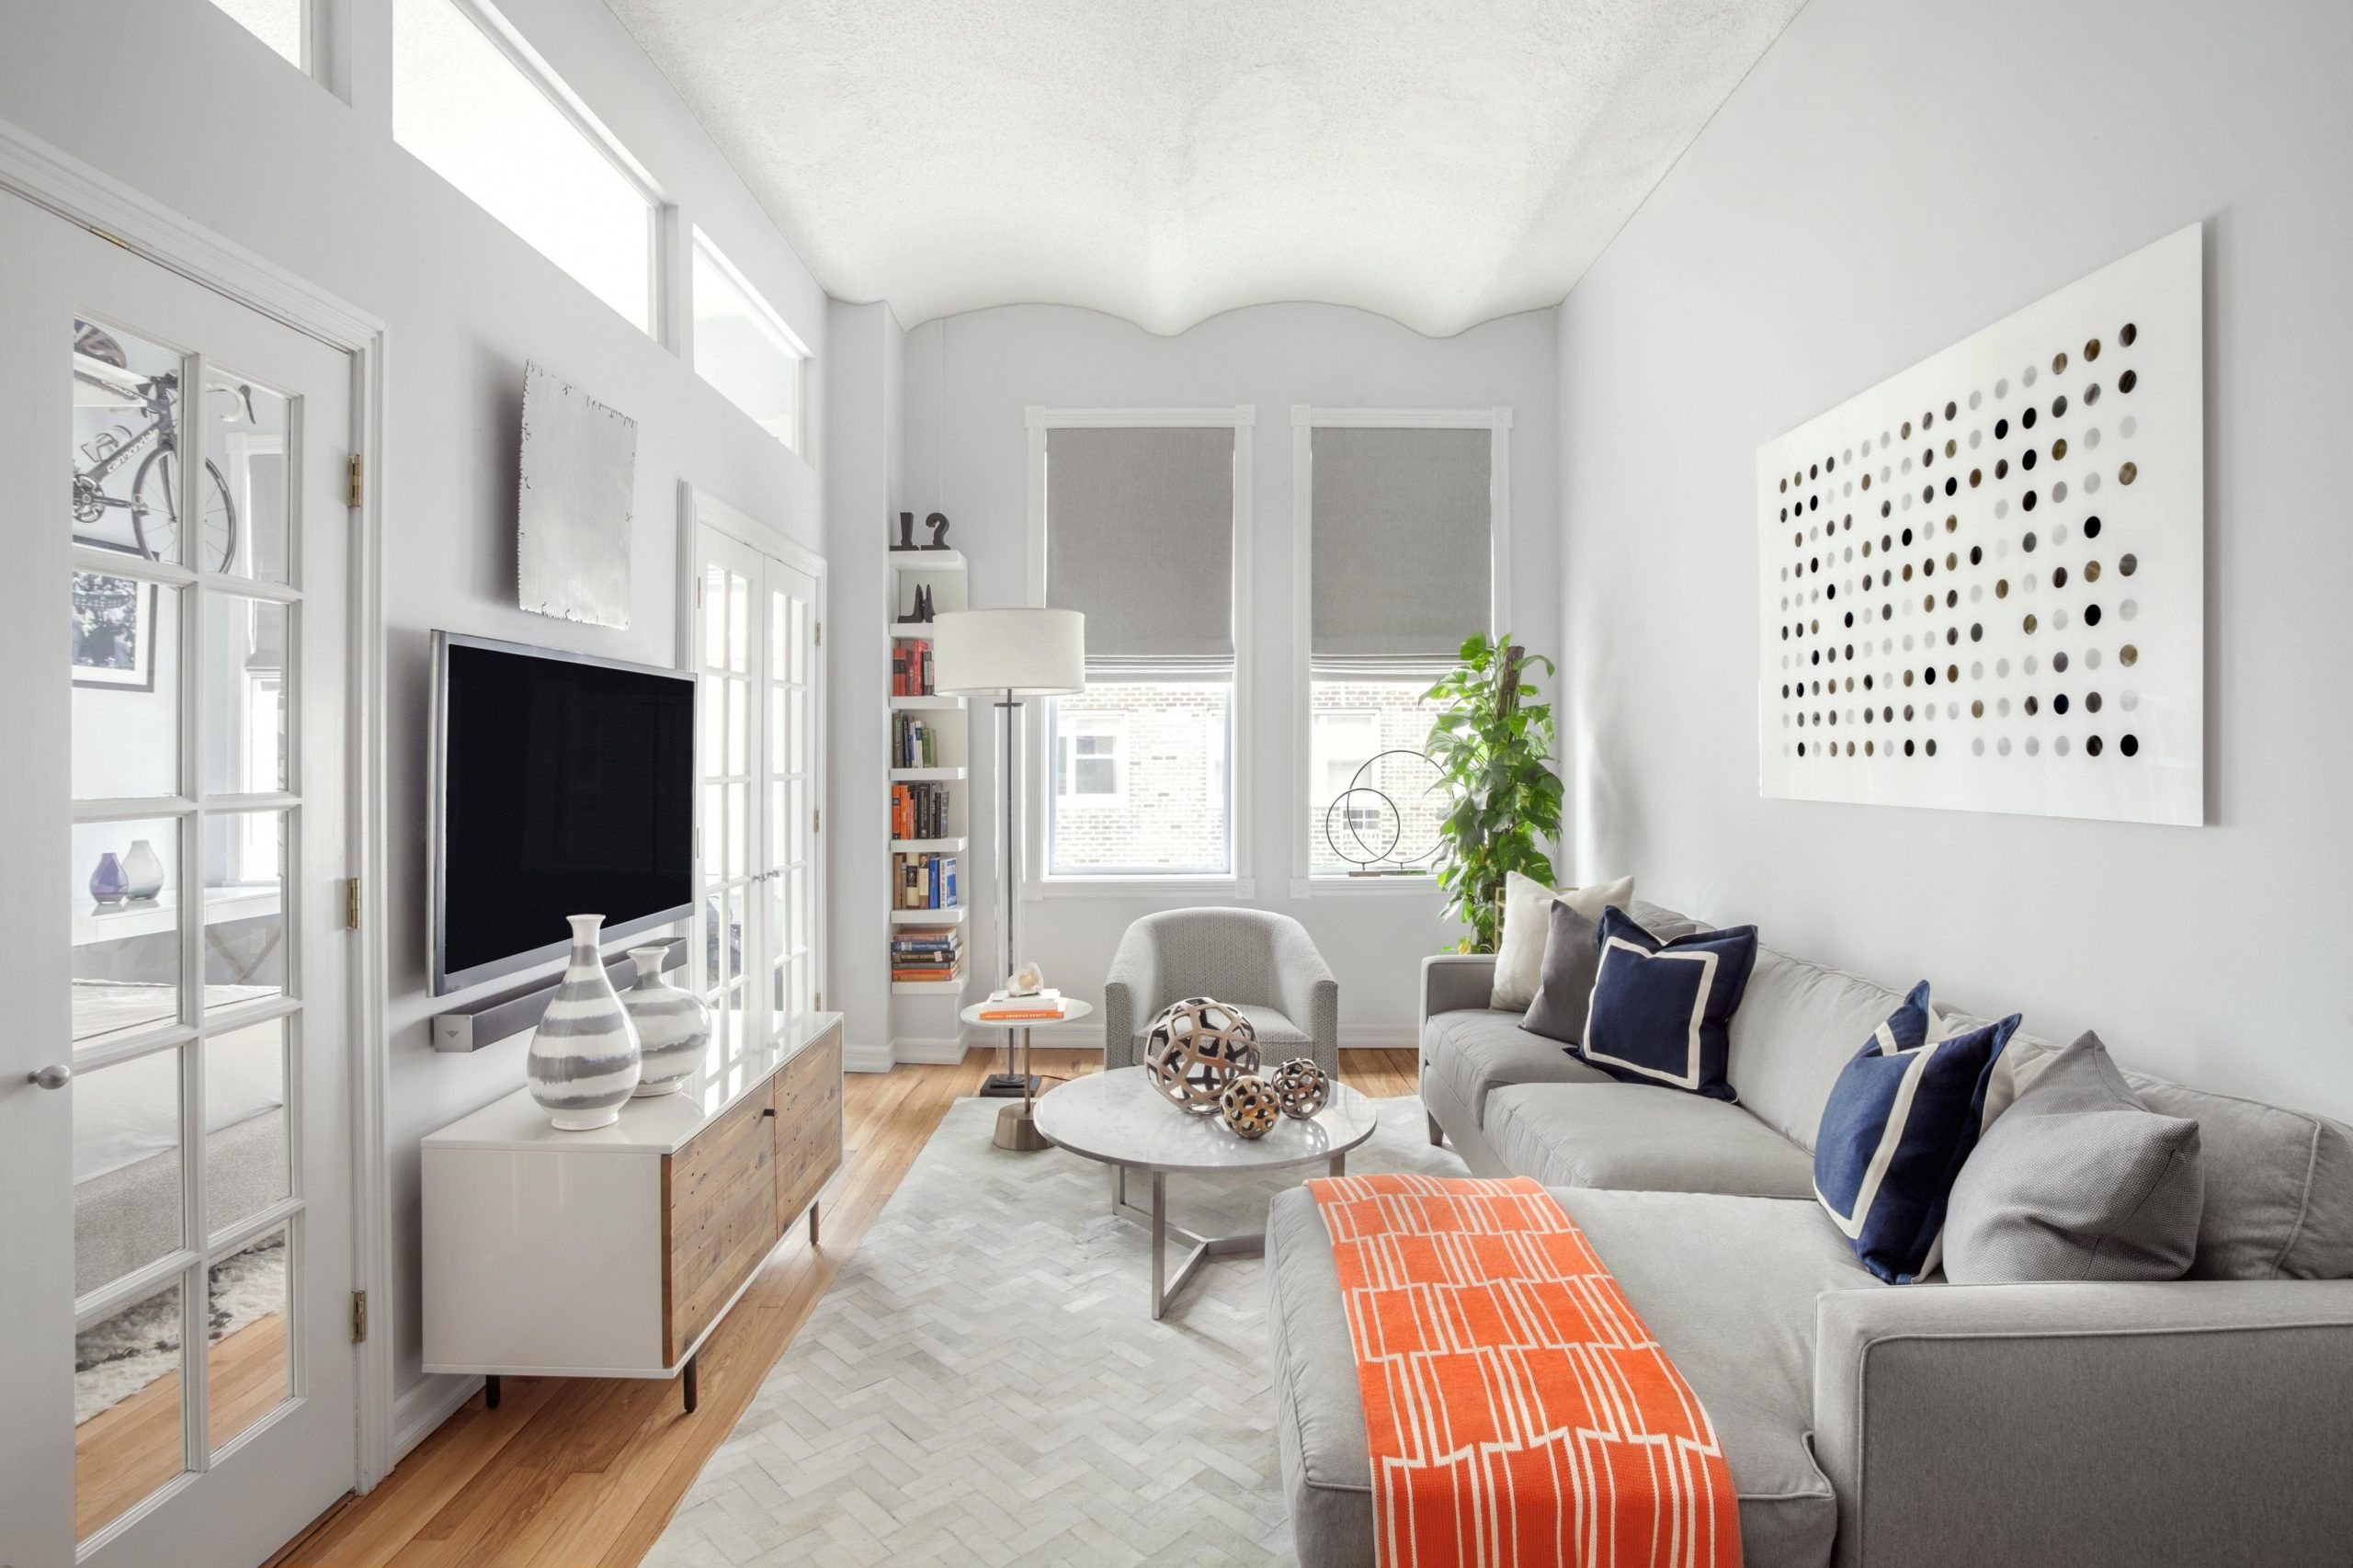 New Apartment Living Room Themes In 2020 Narrow Living Room Small Living Room Design Small Apartment Living Room